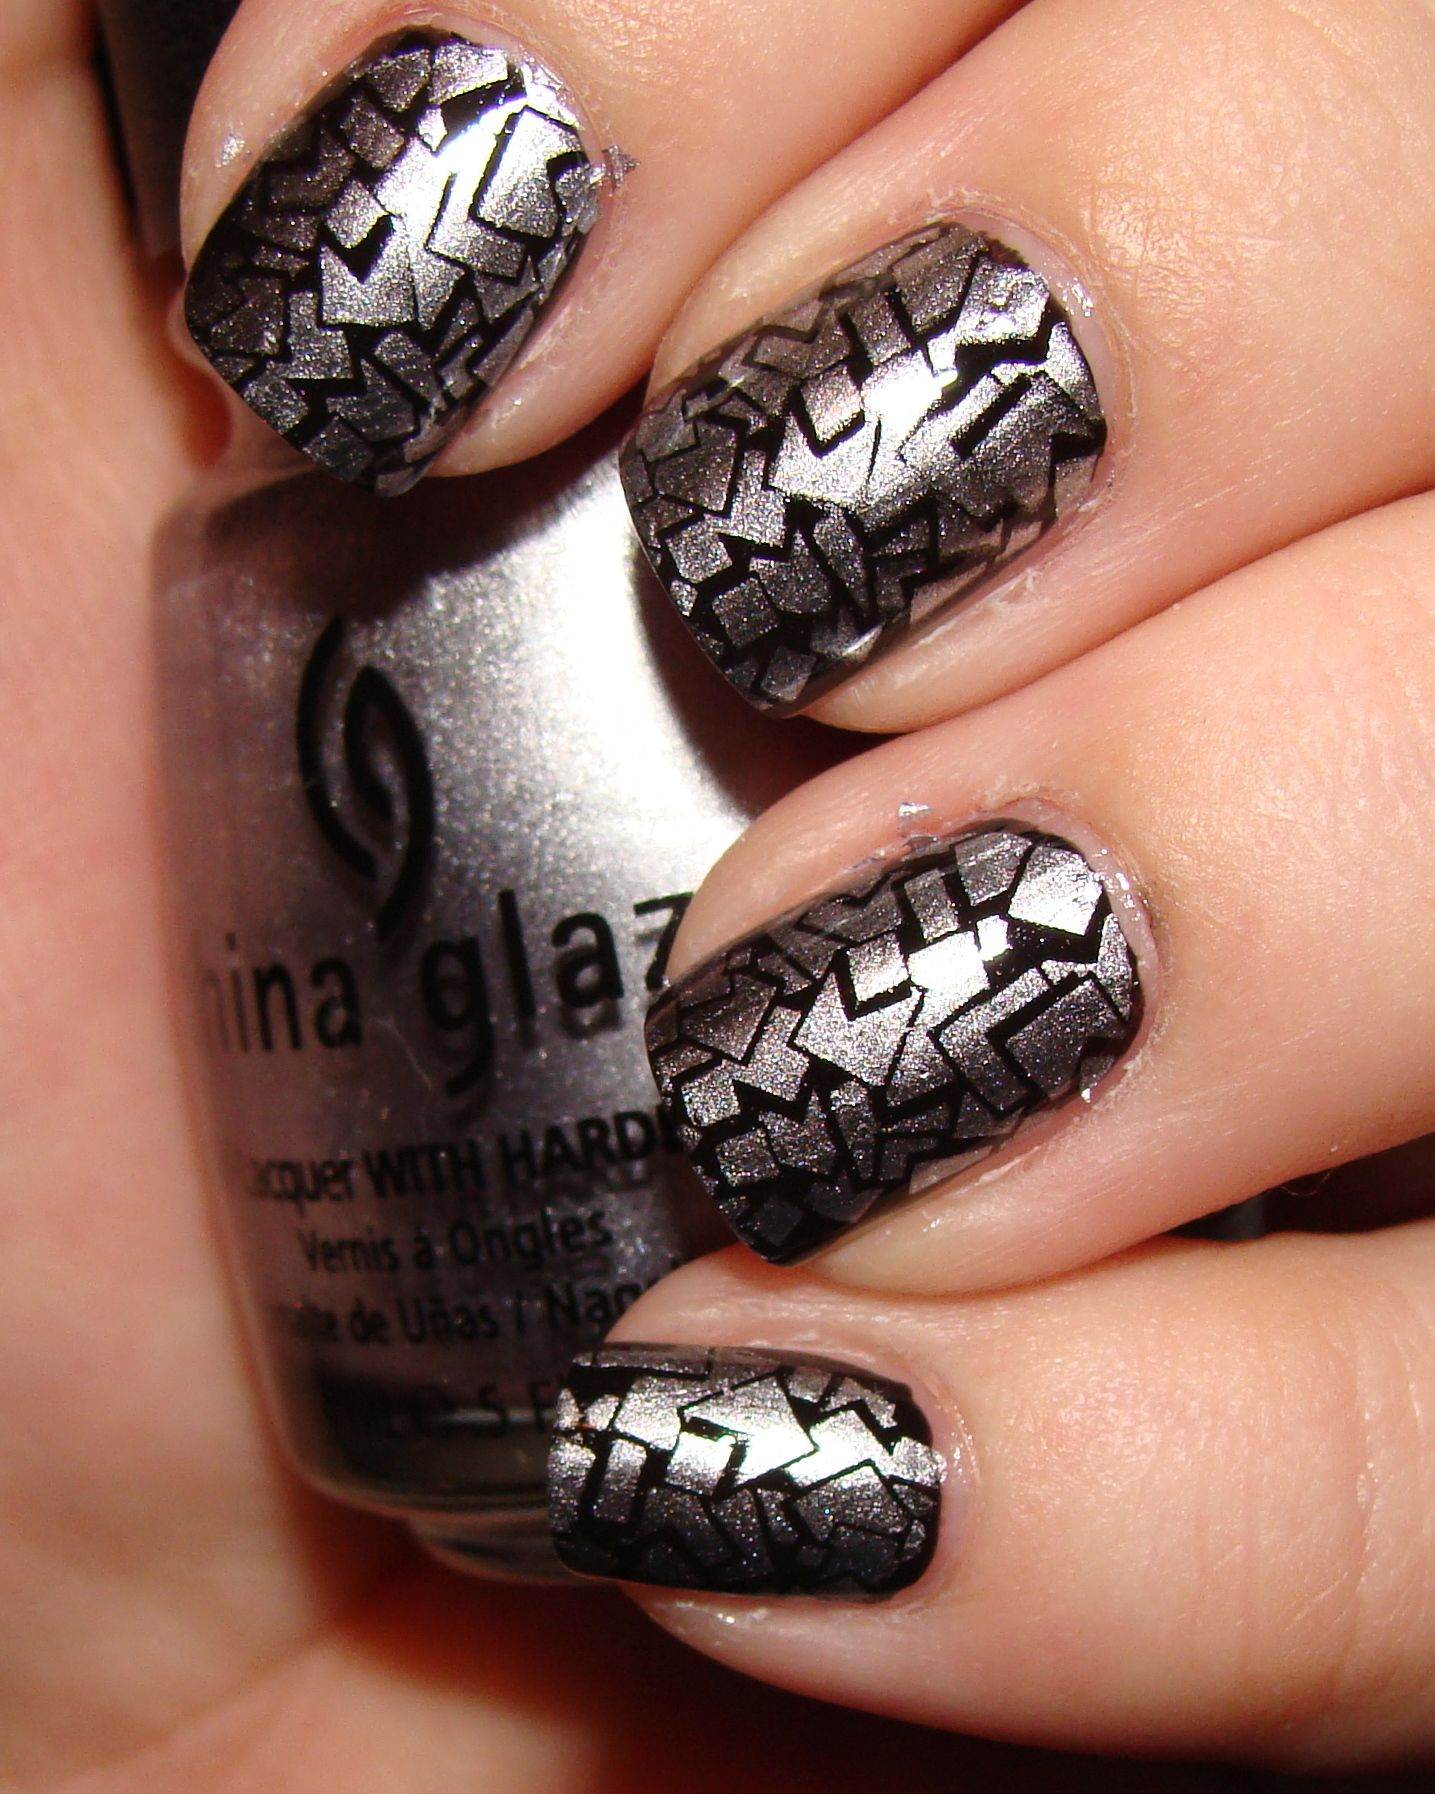 Silver Polish Black Stamping From Konad Nail Art Stamper Video Tutorial On Beautopia Beauty Pinterest